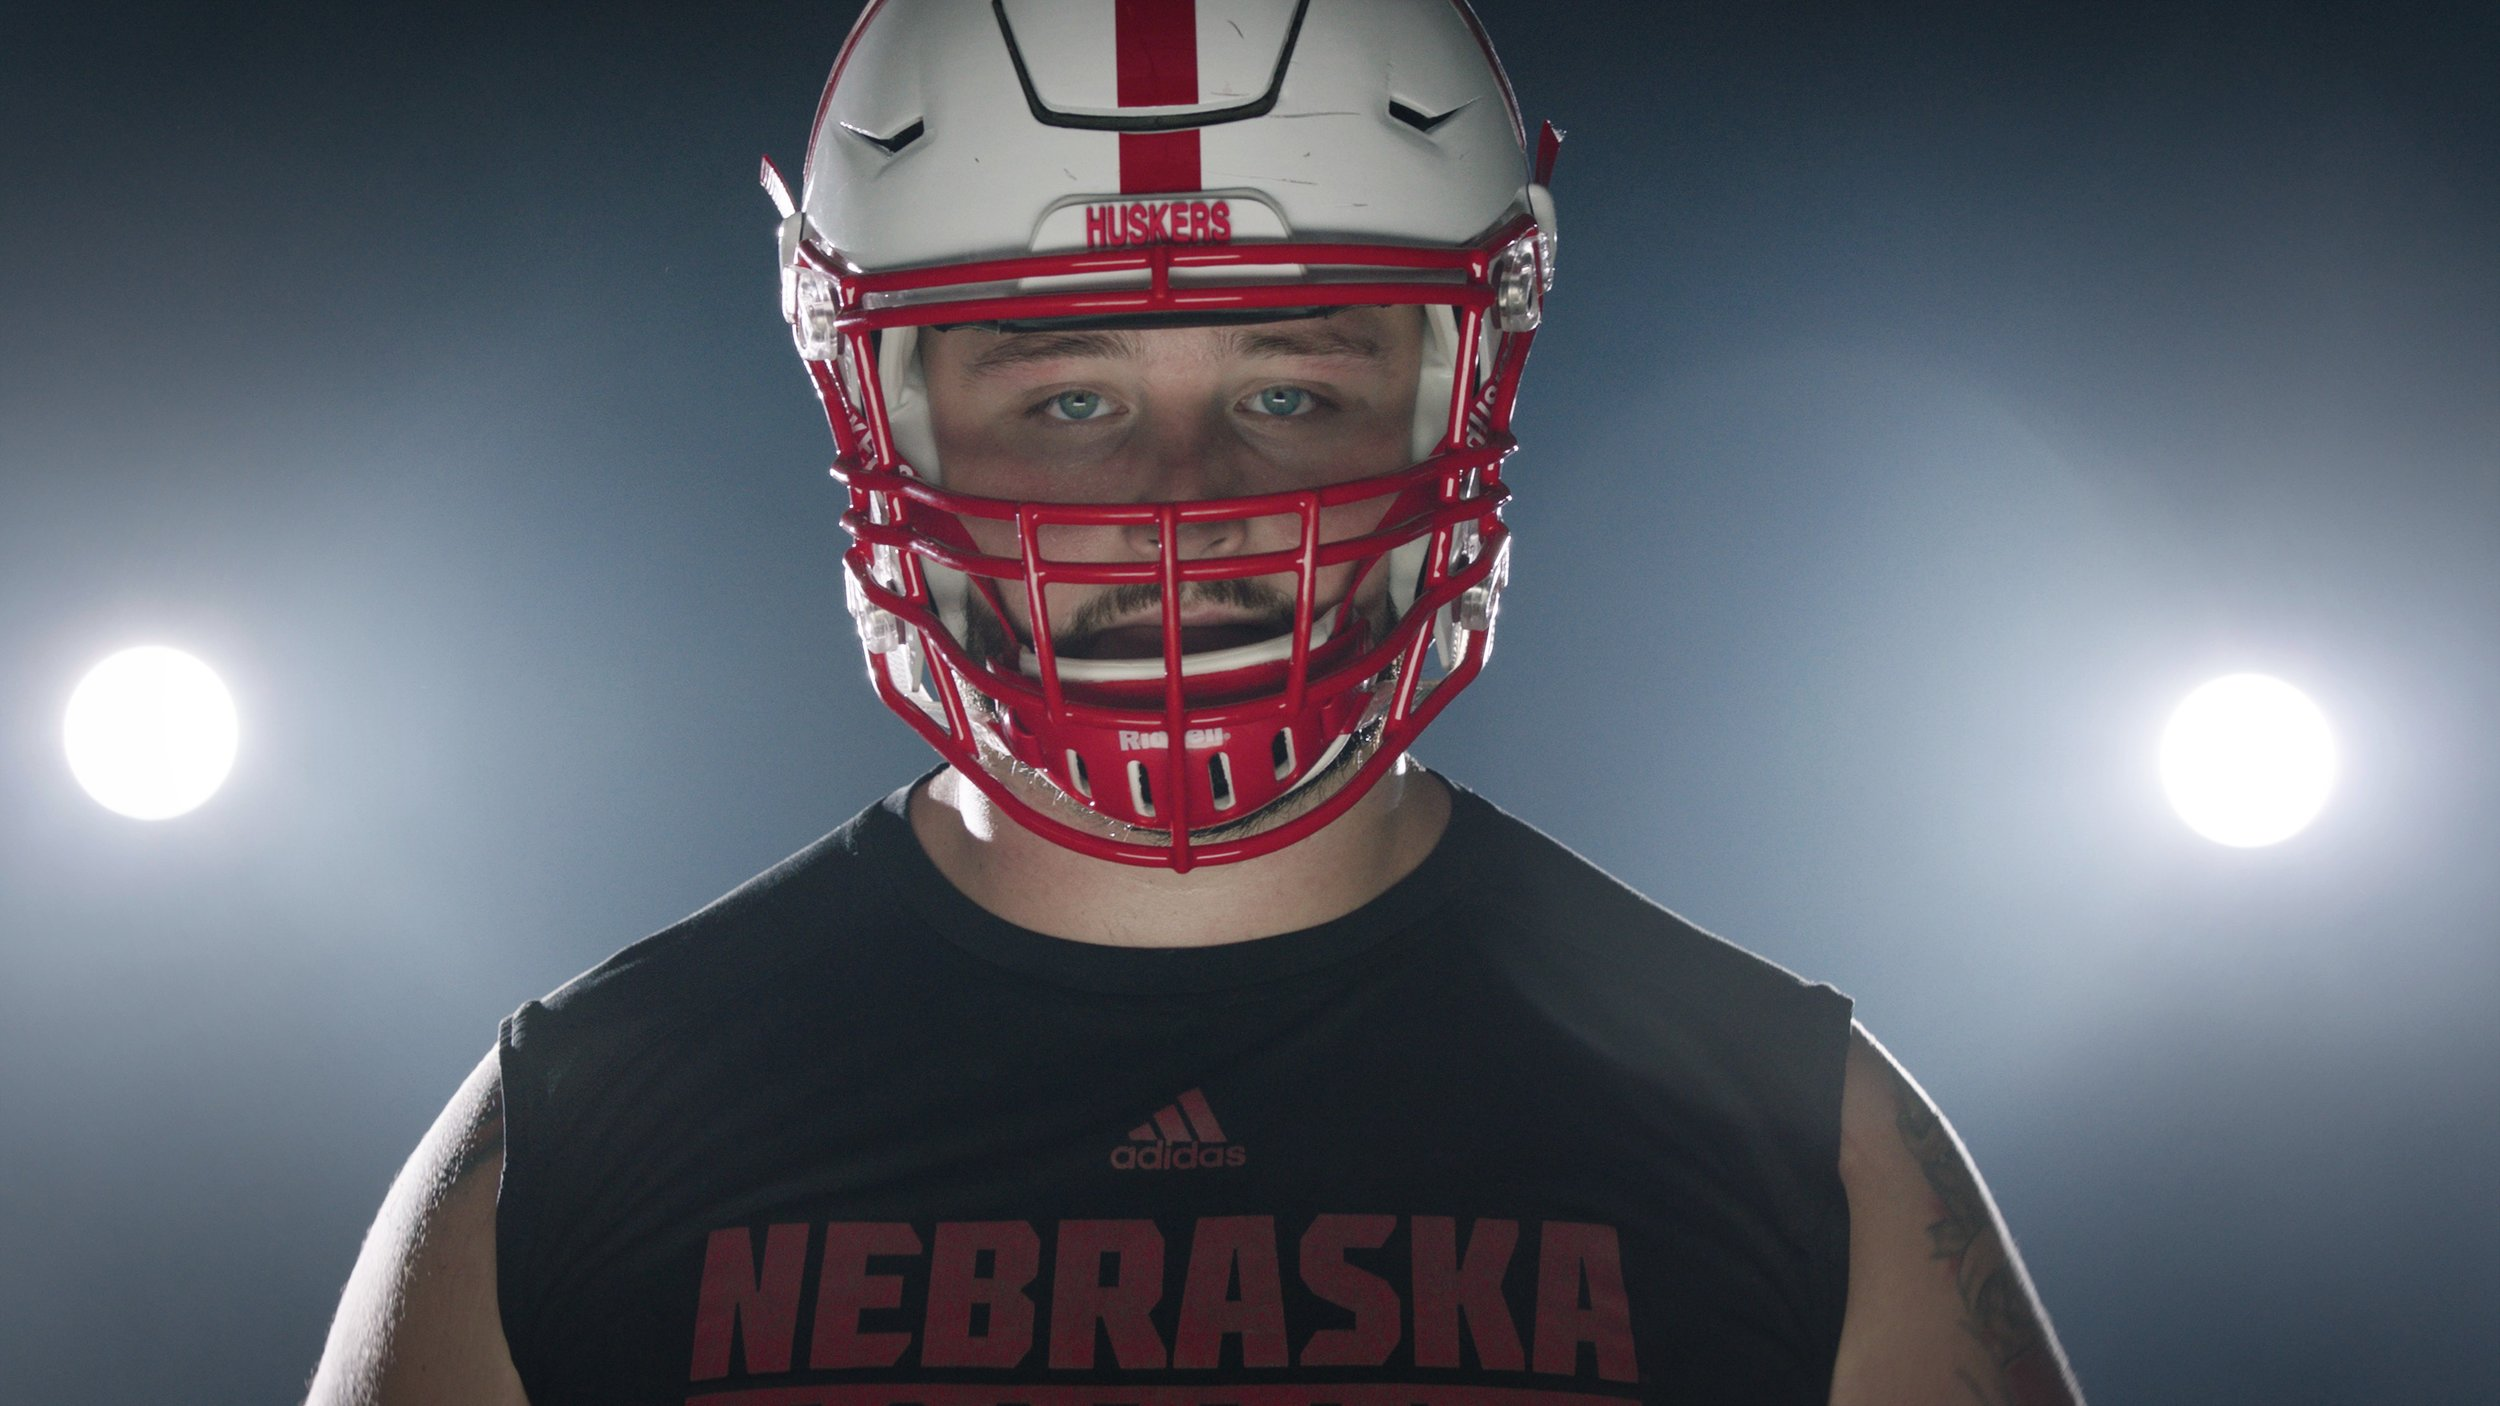 In our grit our glory - Nebraska National Commercial 2018